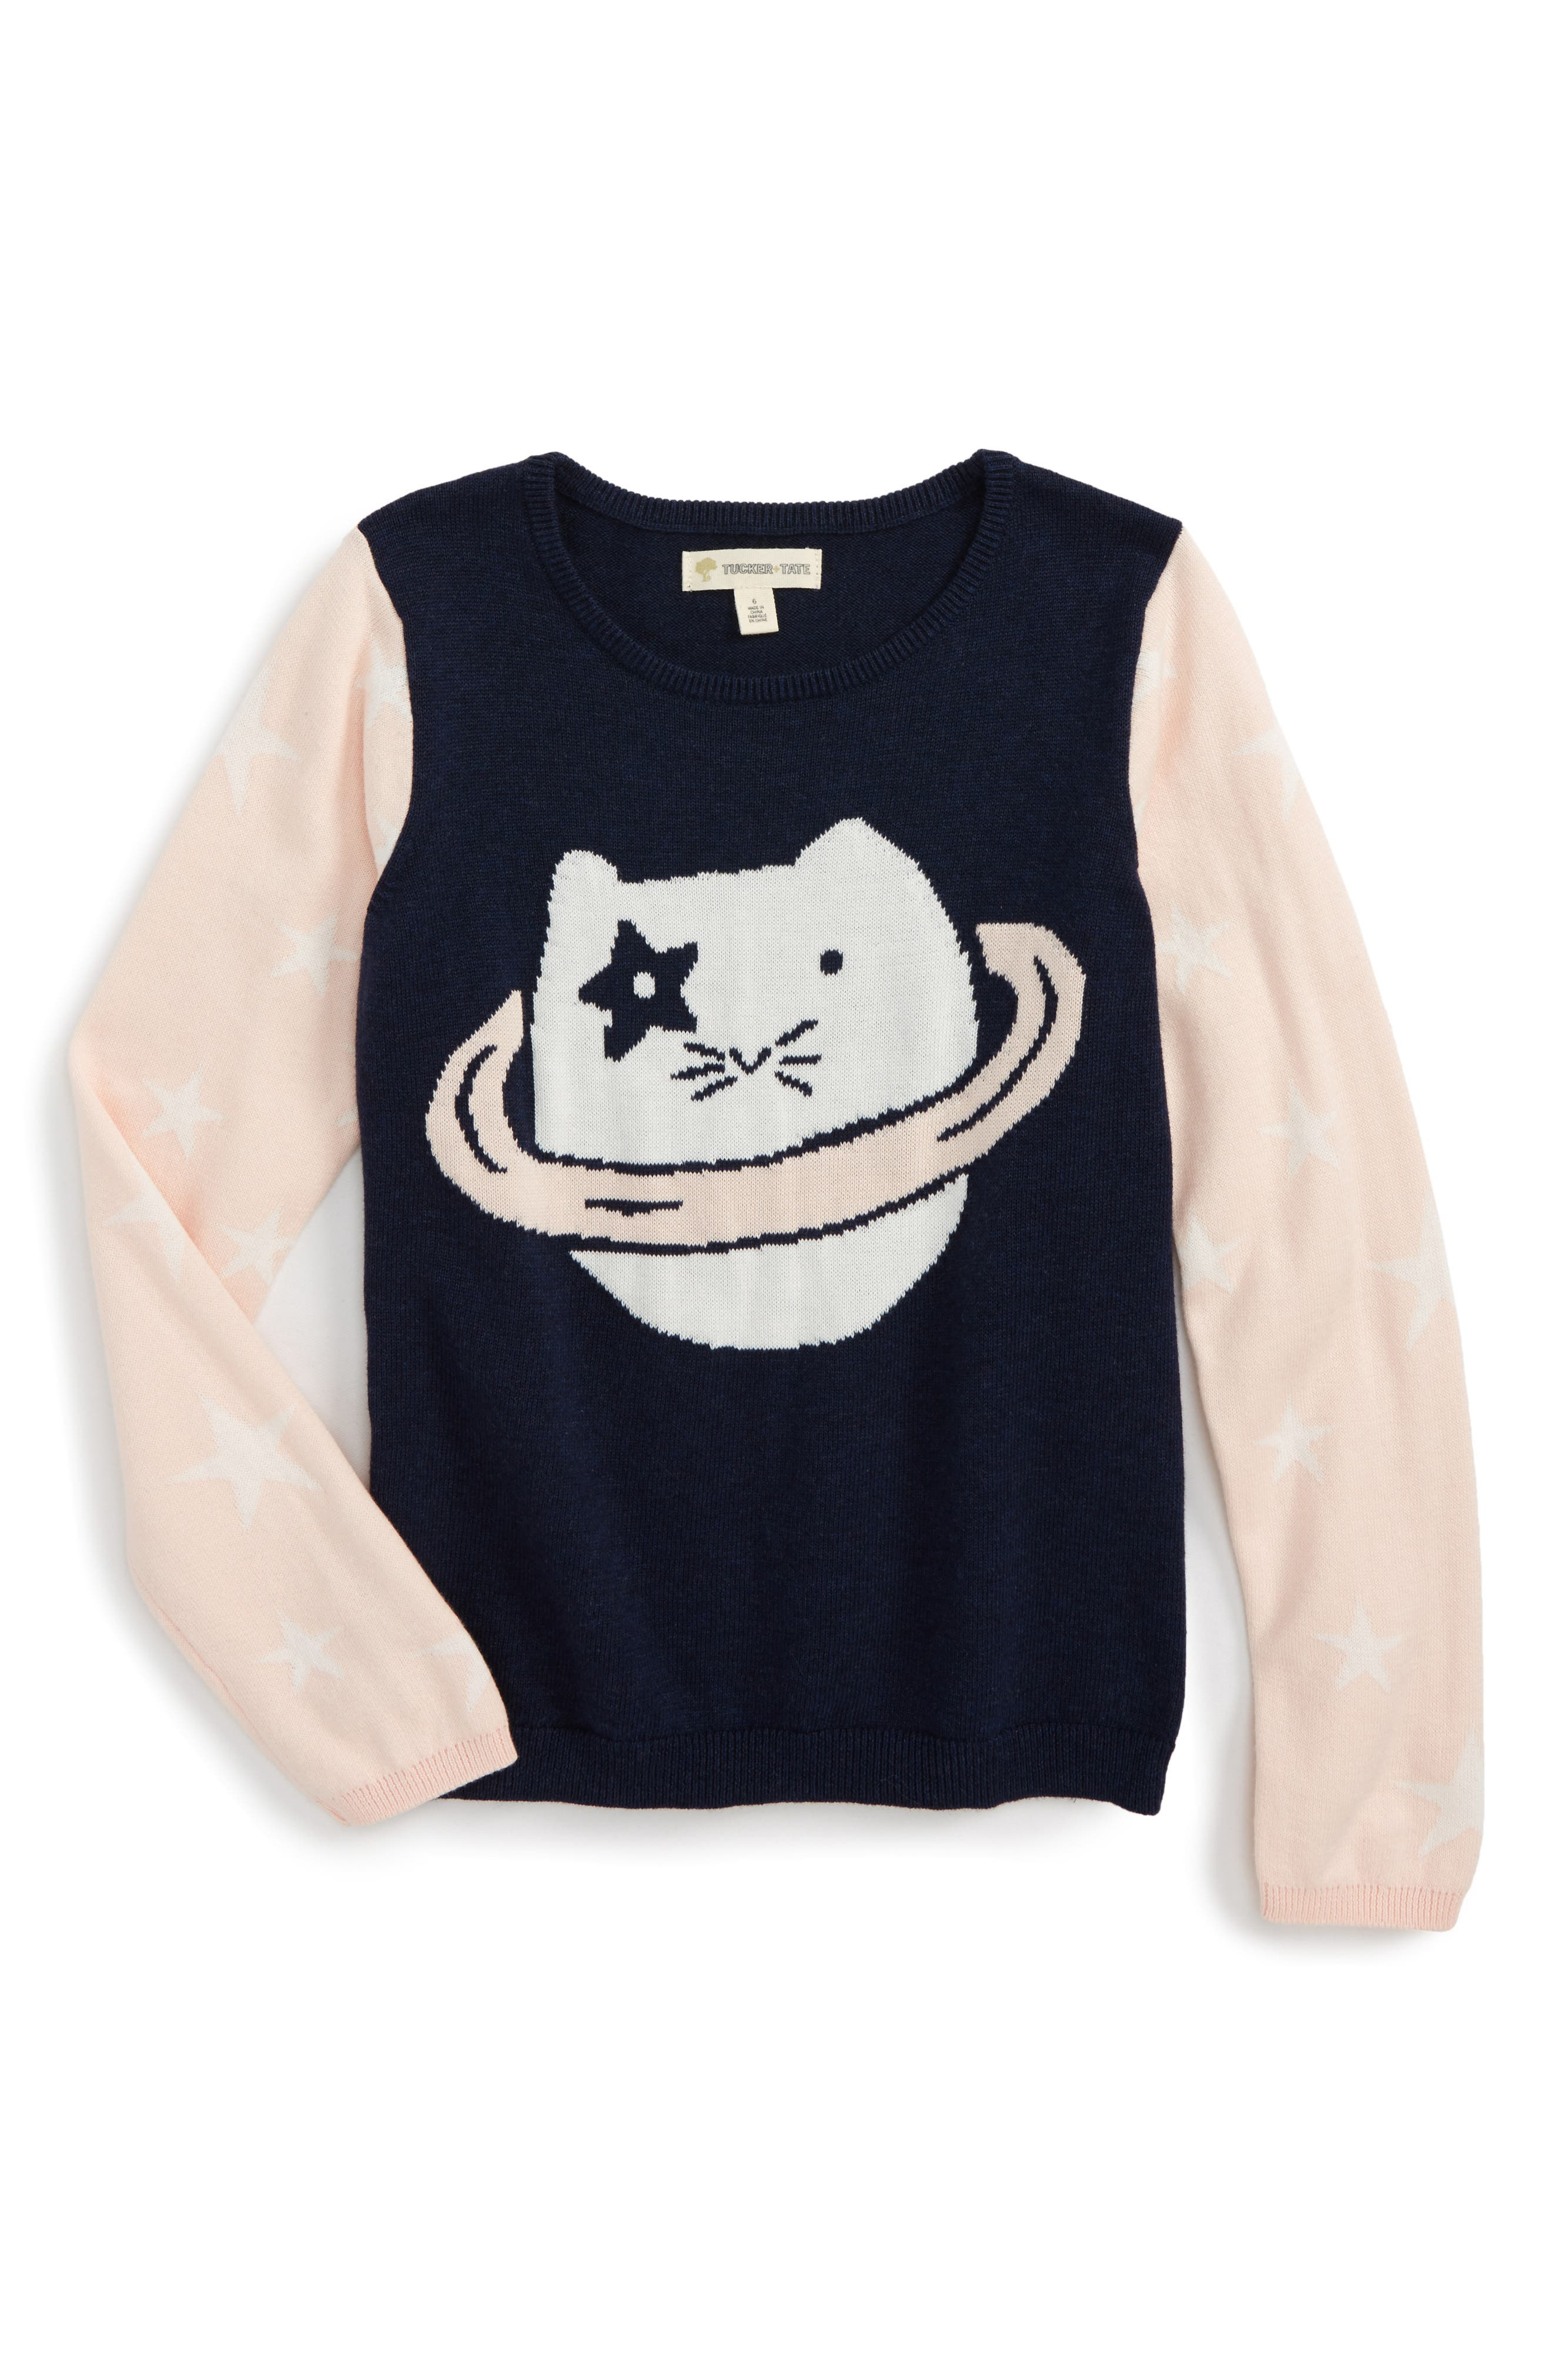 Pattern Mix Sweater,                         Main,                         color, Navy Peacoat Heather Space Cat